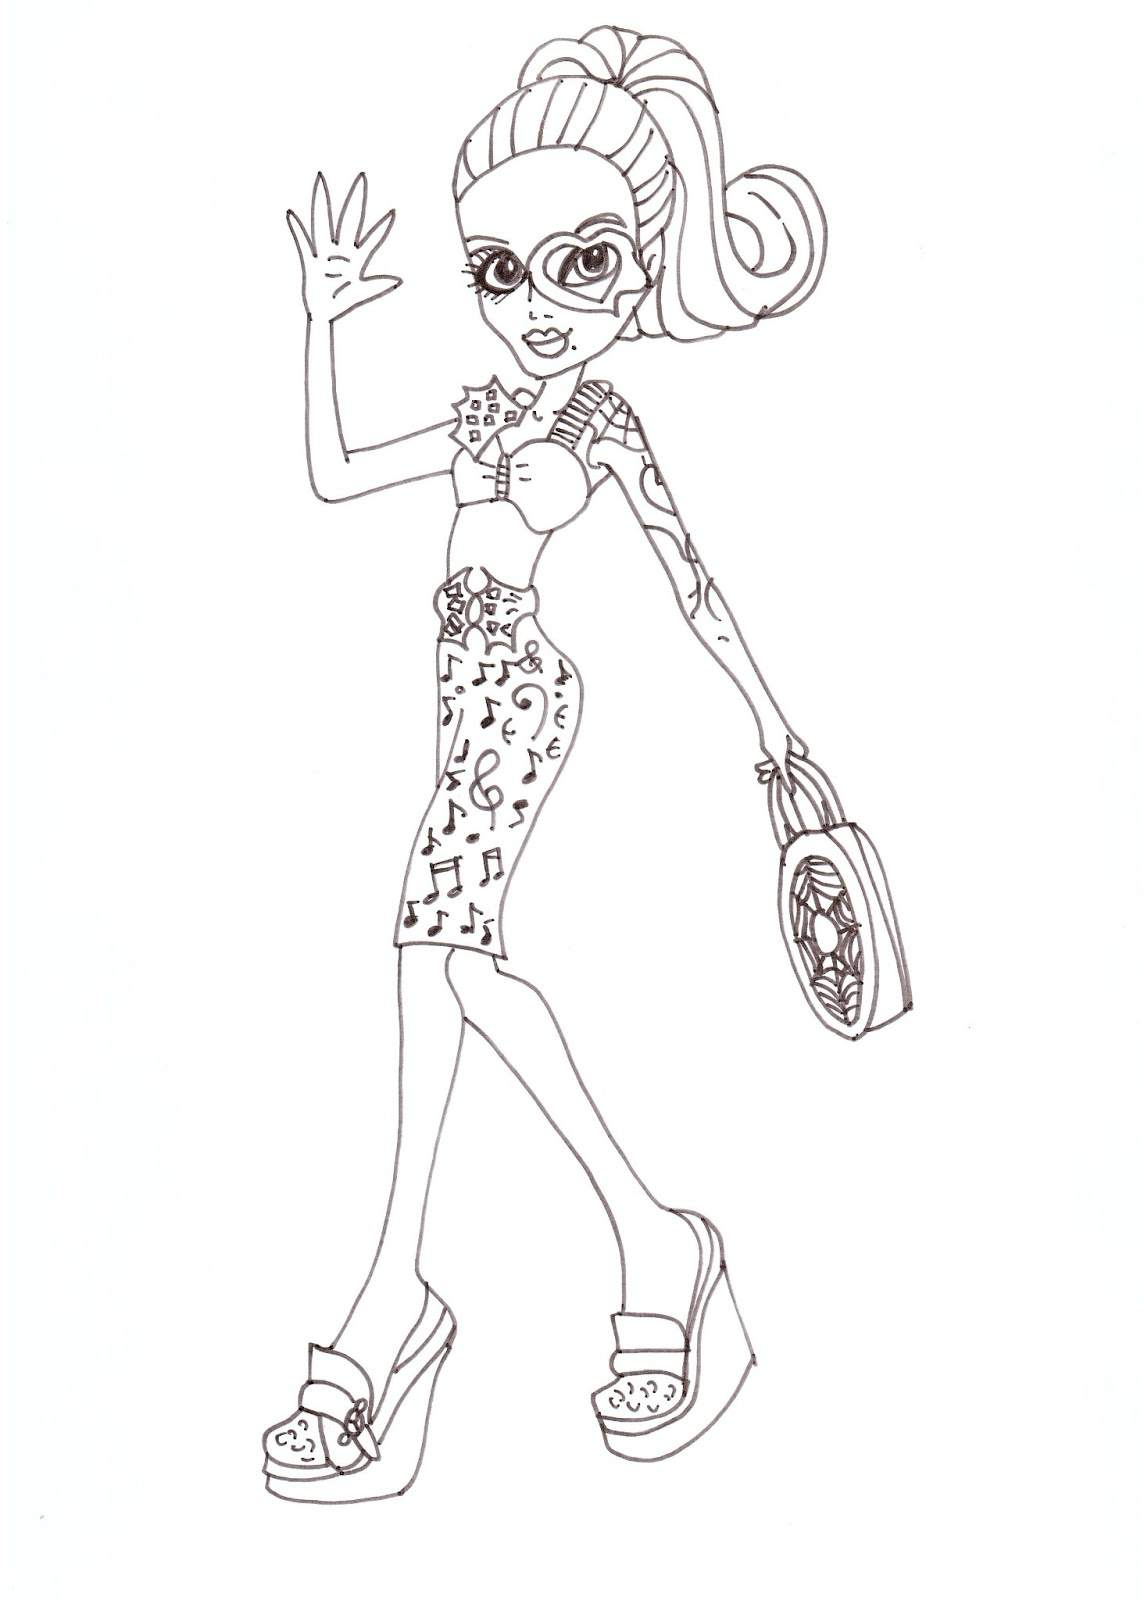 Free Printable Monster High Coloring Pages: Operetta